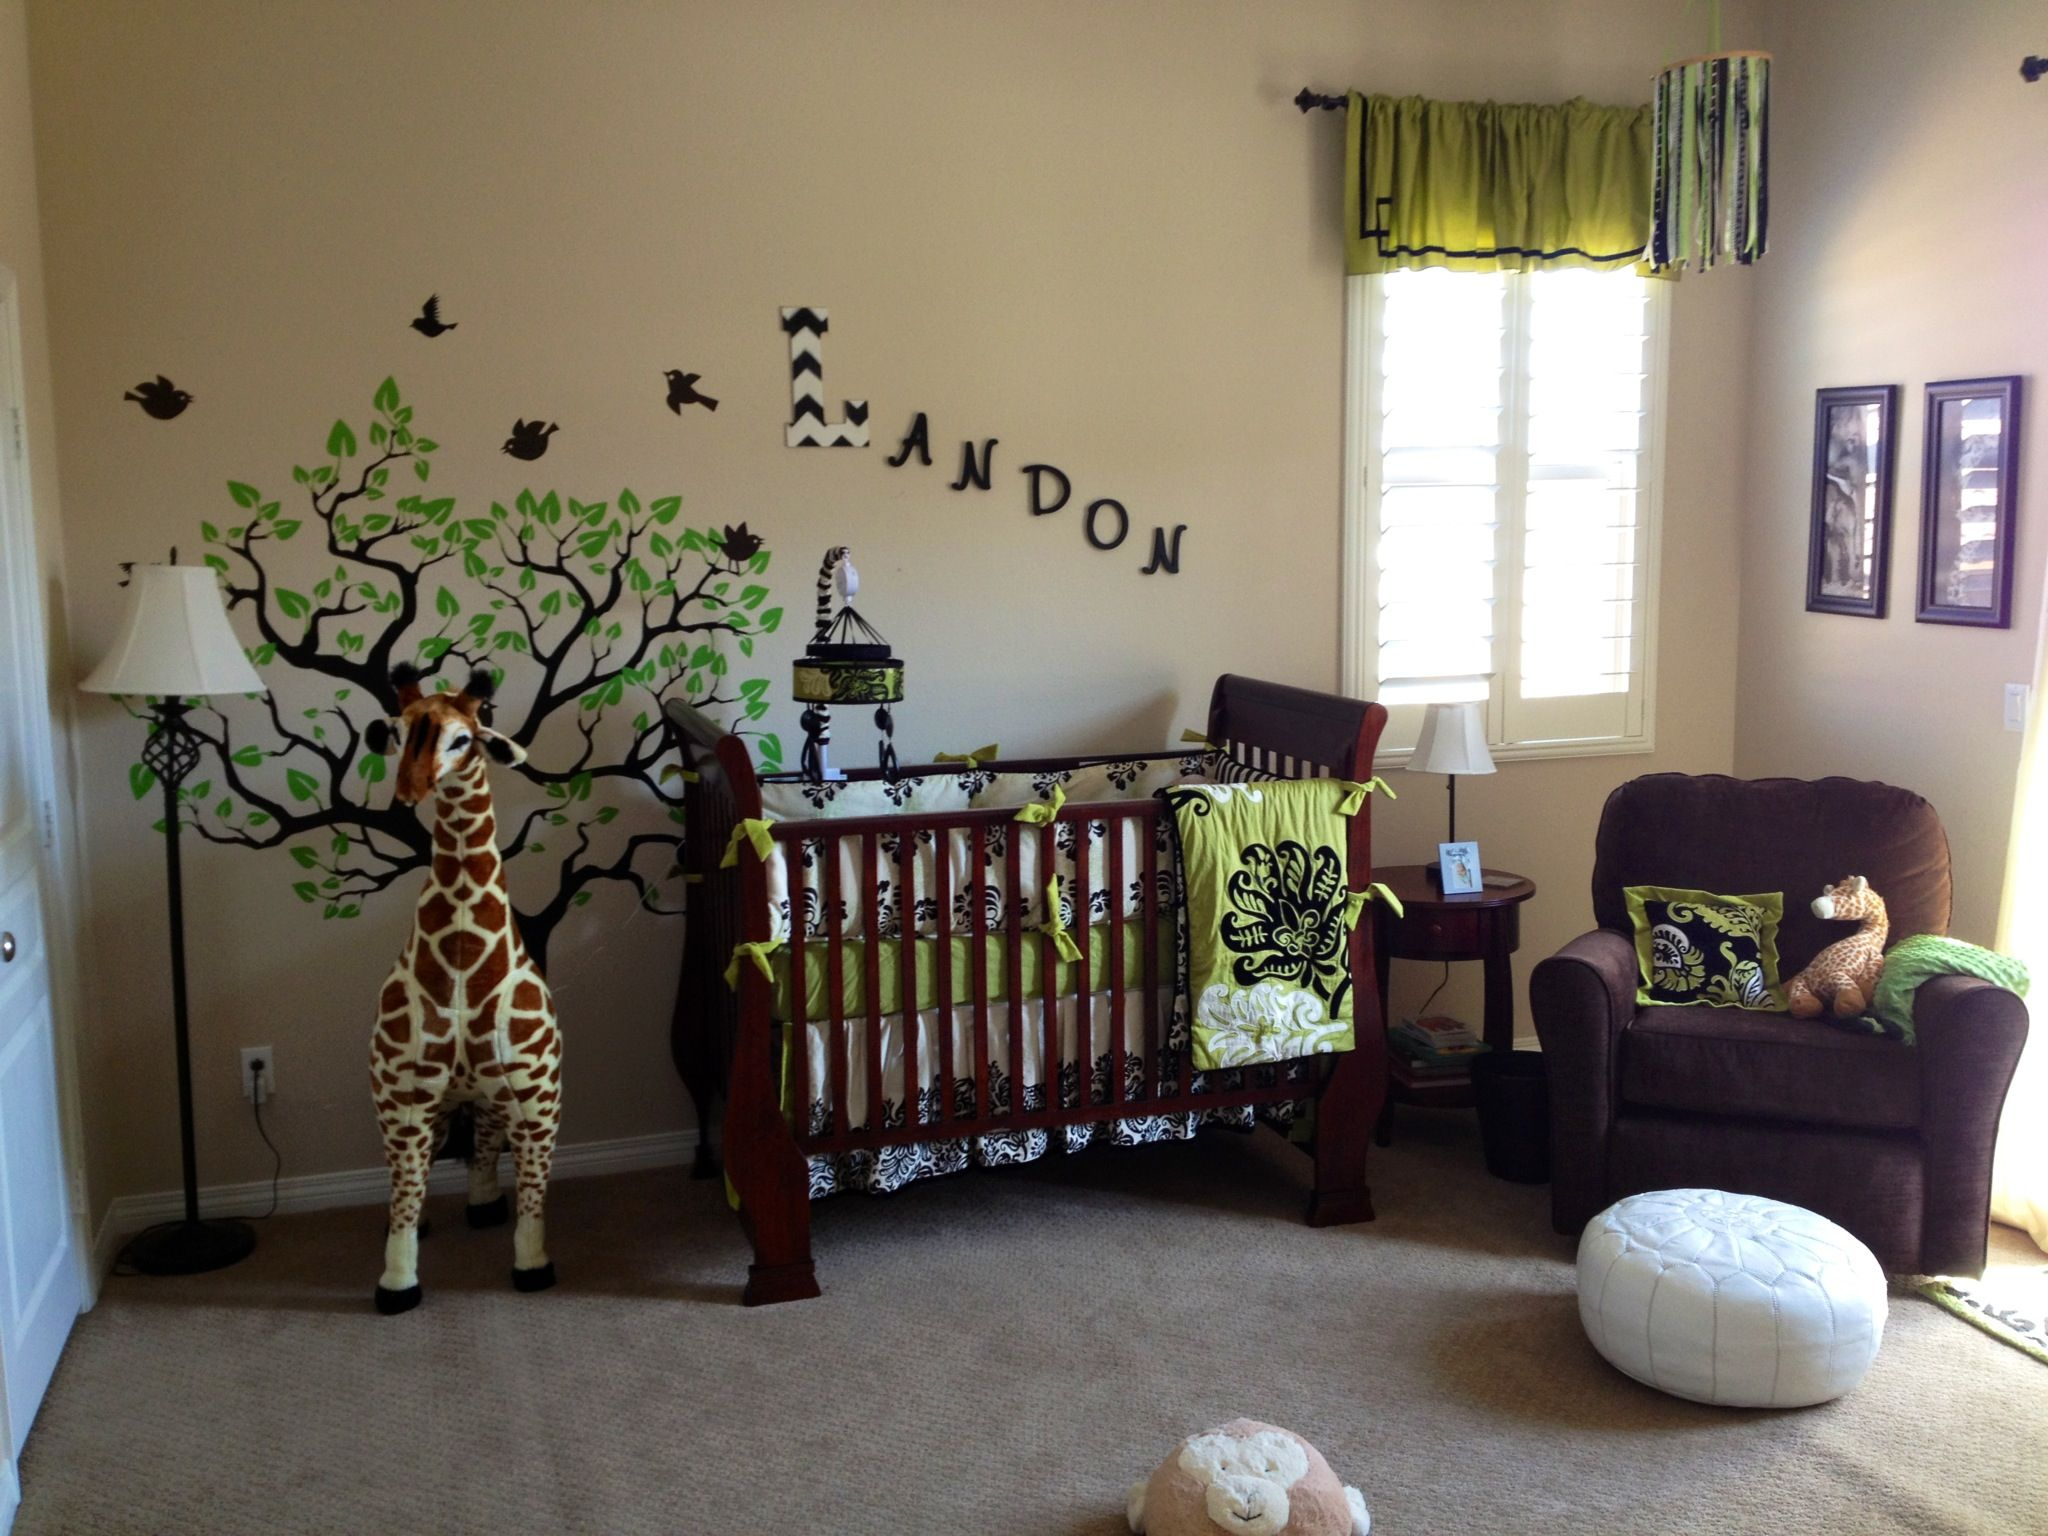 Baby boy room decor pinterest - Safari Nursery Modern Giraffe Theme Boys Room Green And Black